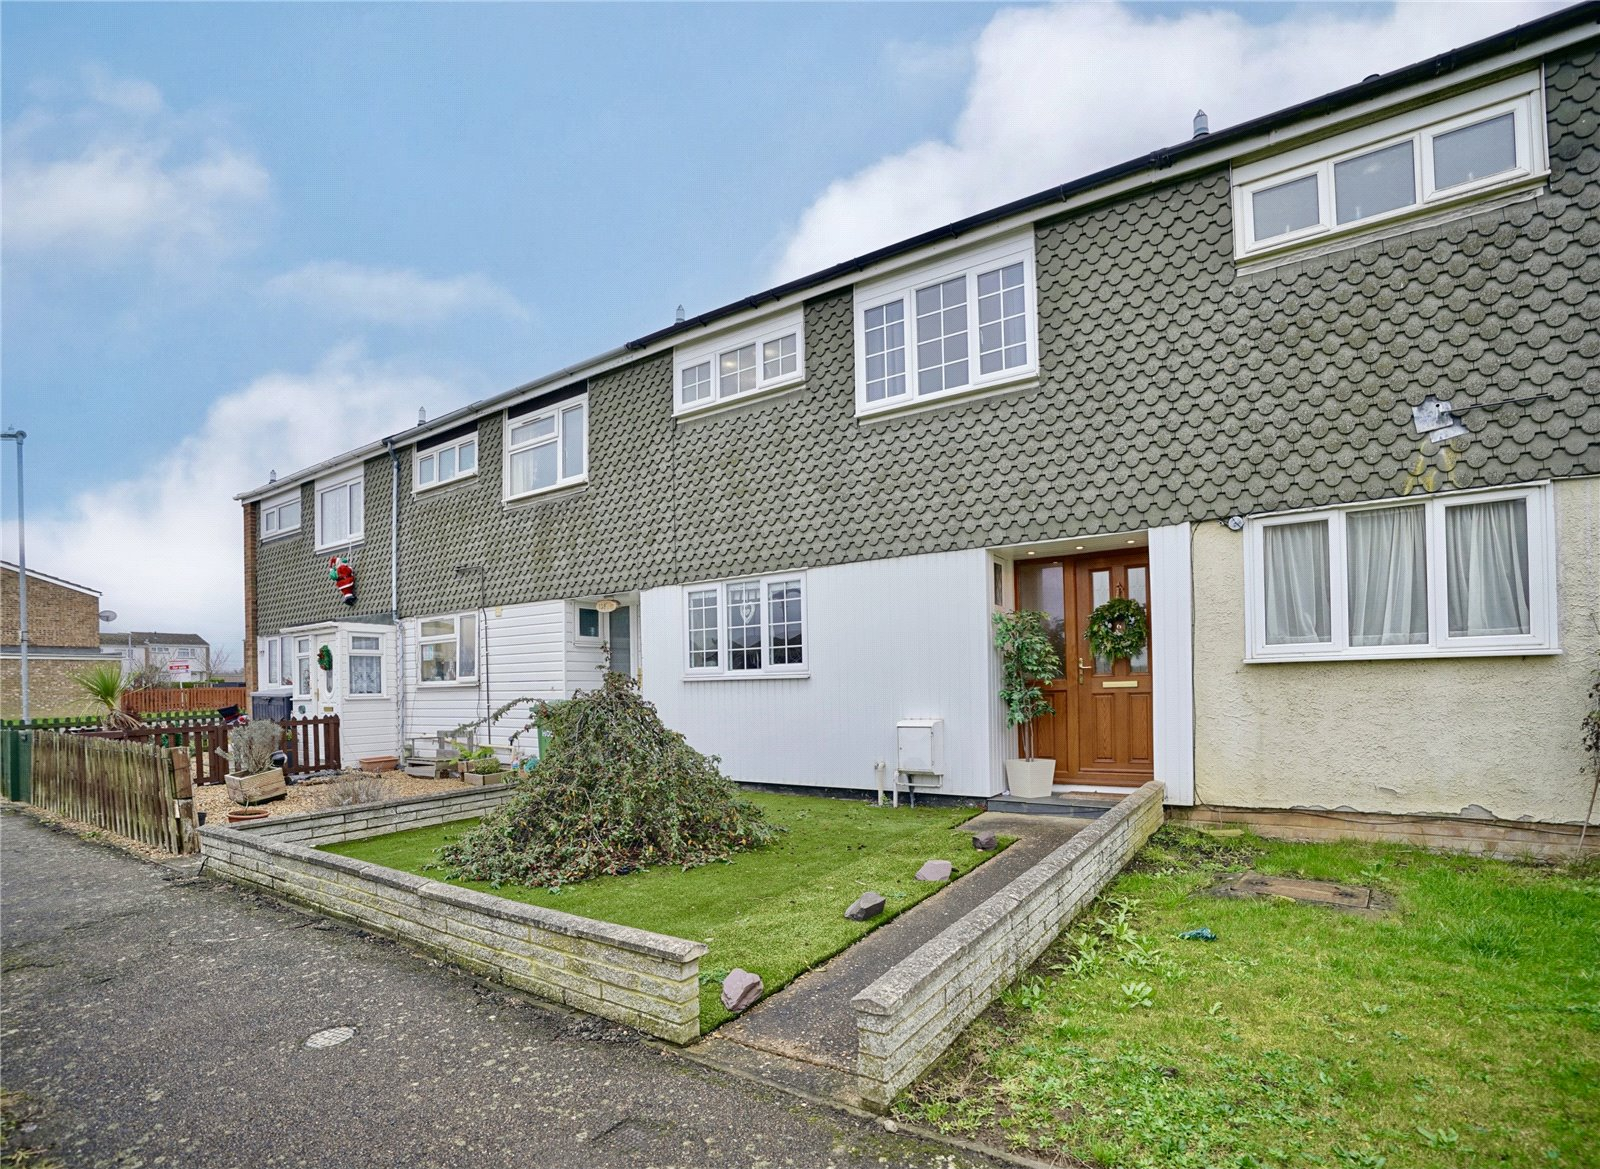 3 bed house for sale in Eynesbury, Howitts Gardens, PE19 2PA, PE19